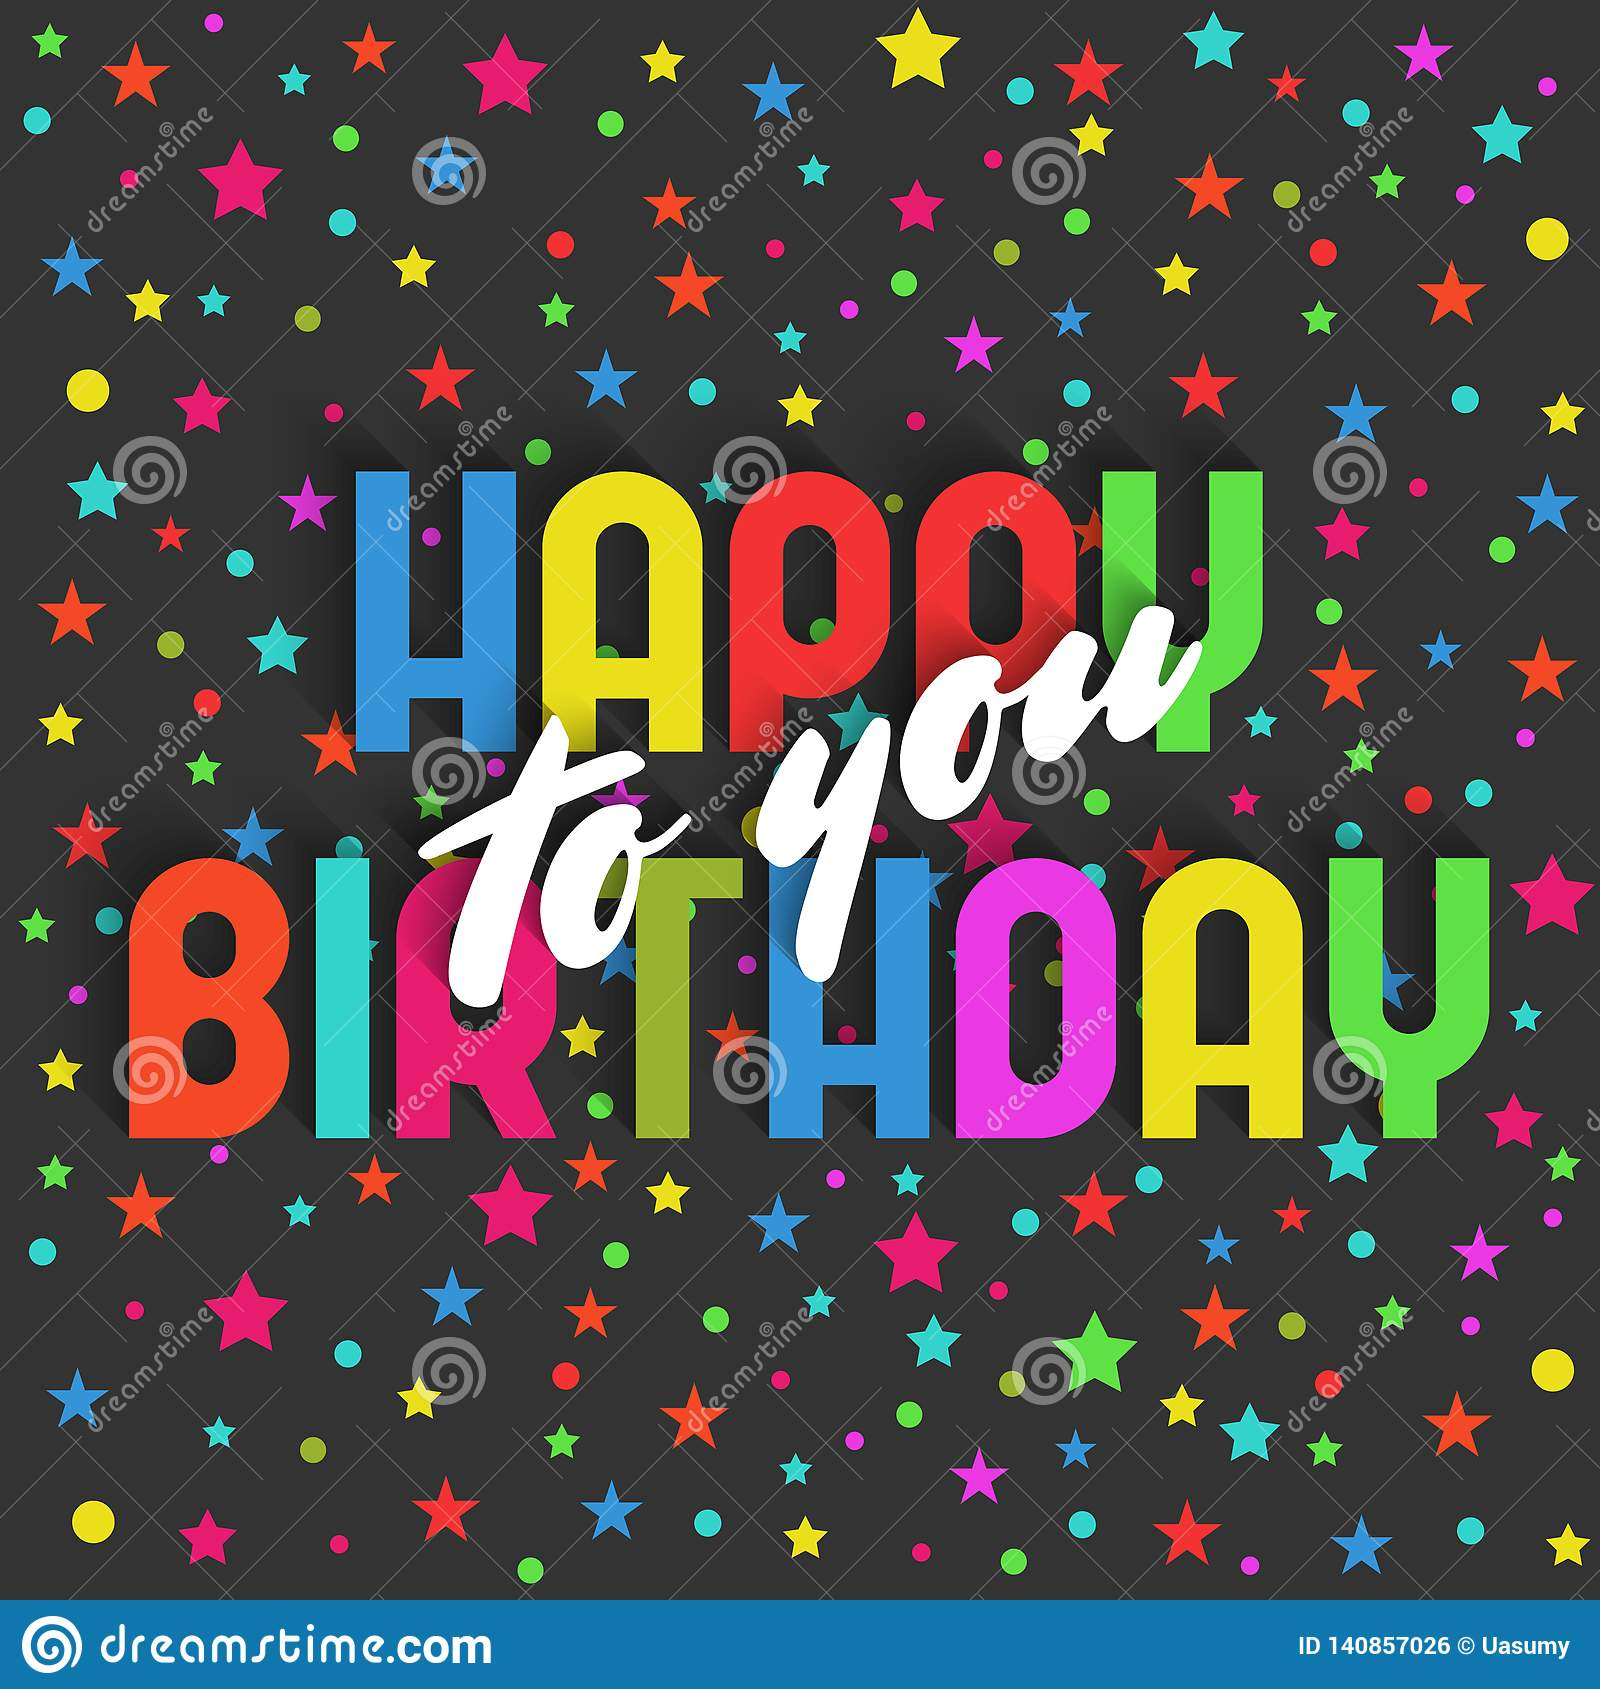 Happy Birthday To You Greeting Card Colorful Star And